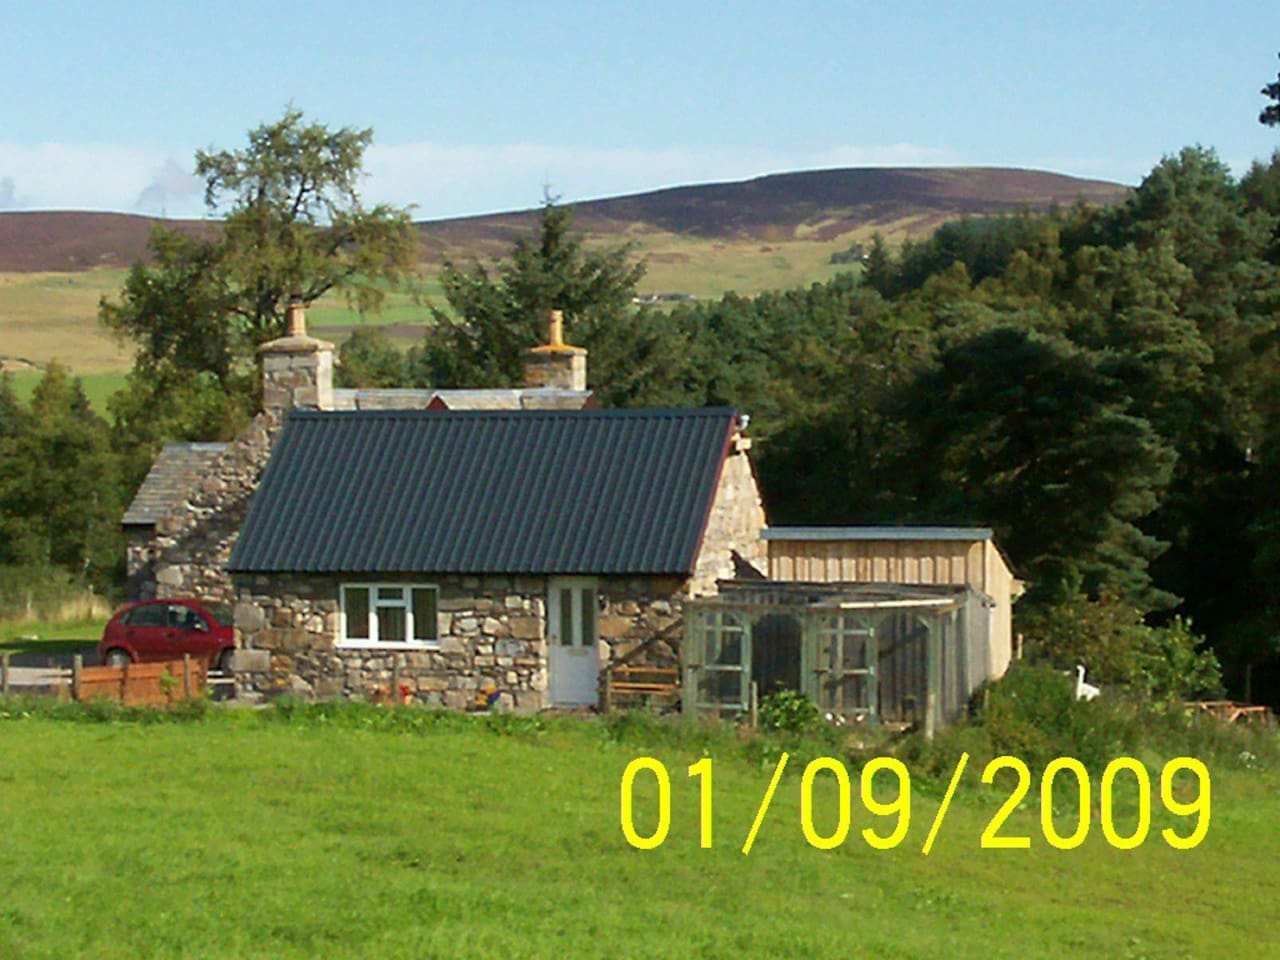 The front of the Bothy